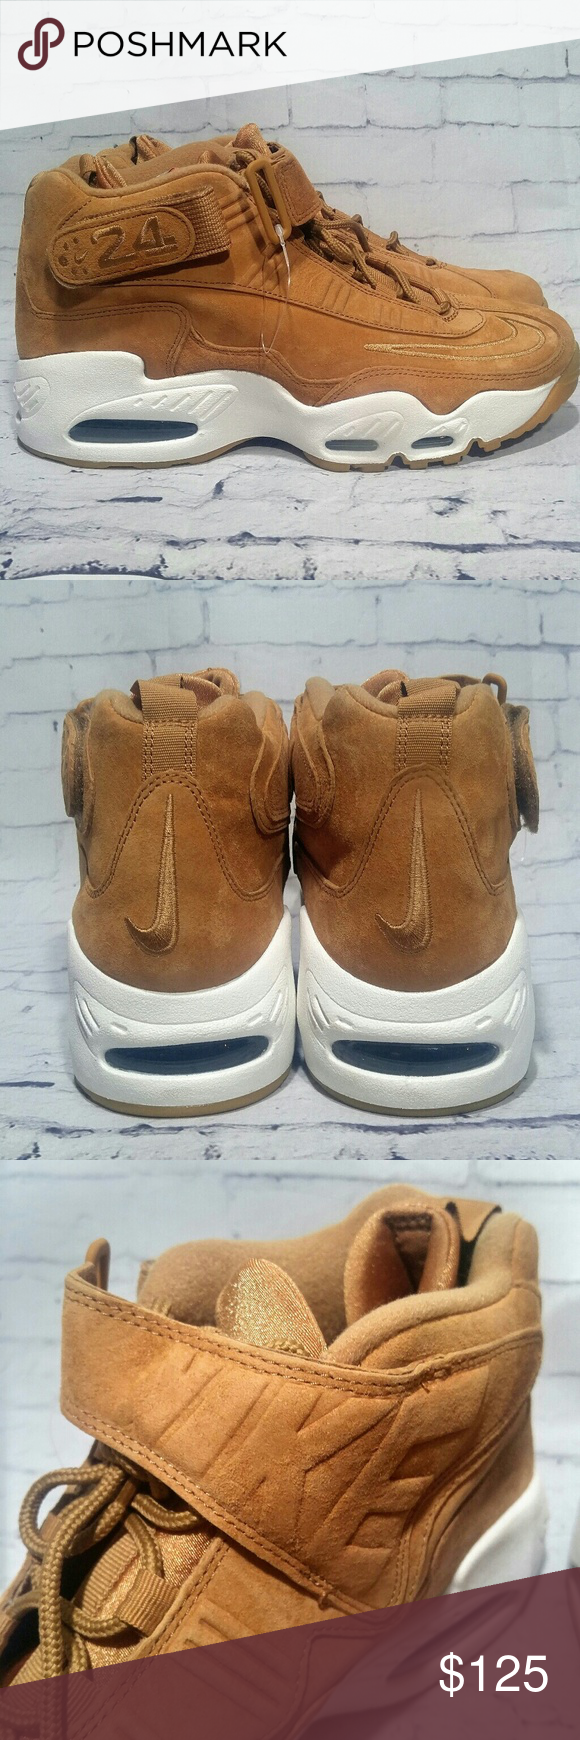 best service c9c28 f8896 Nike New Air Griffey Max 1 Shoes Wheat Flax Sail You are buying New Nike Air